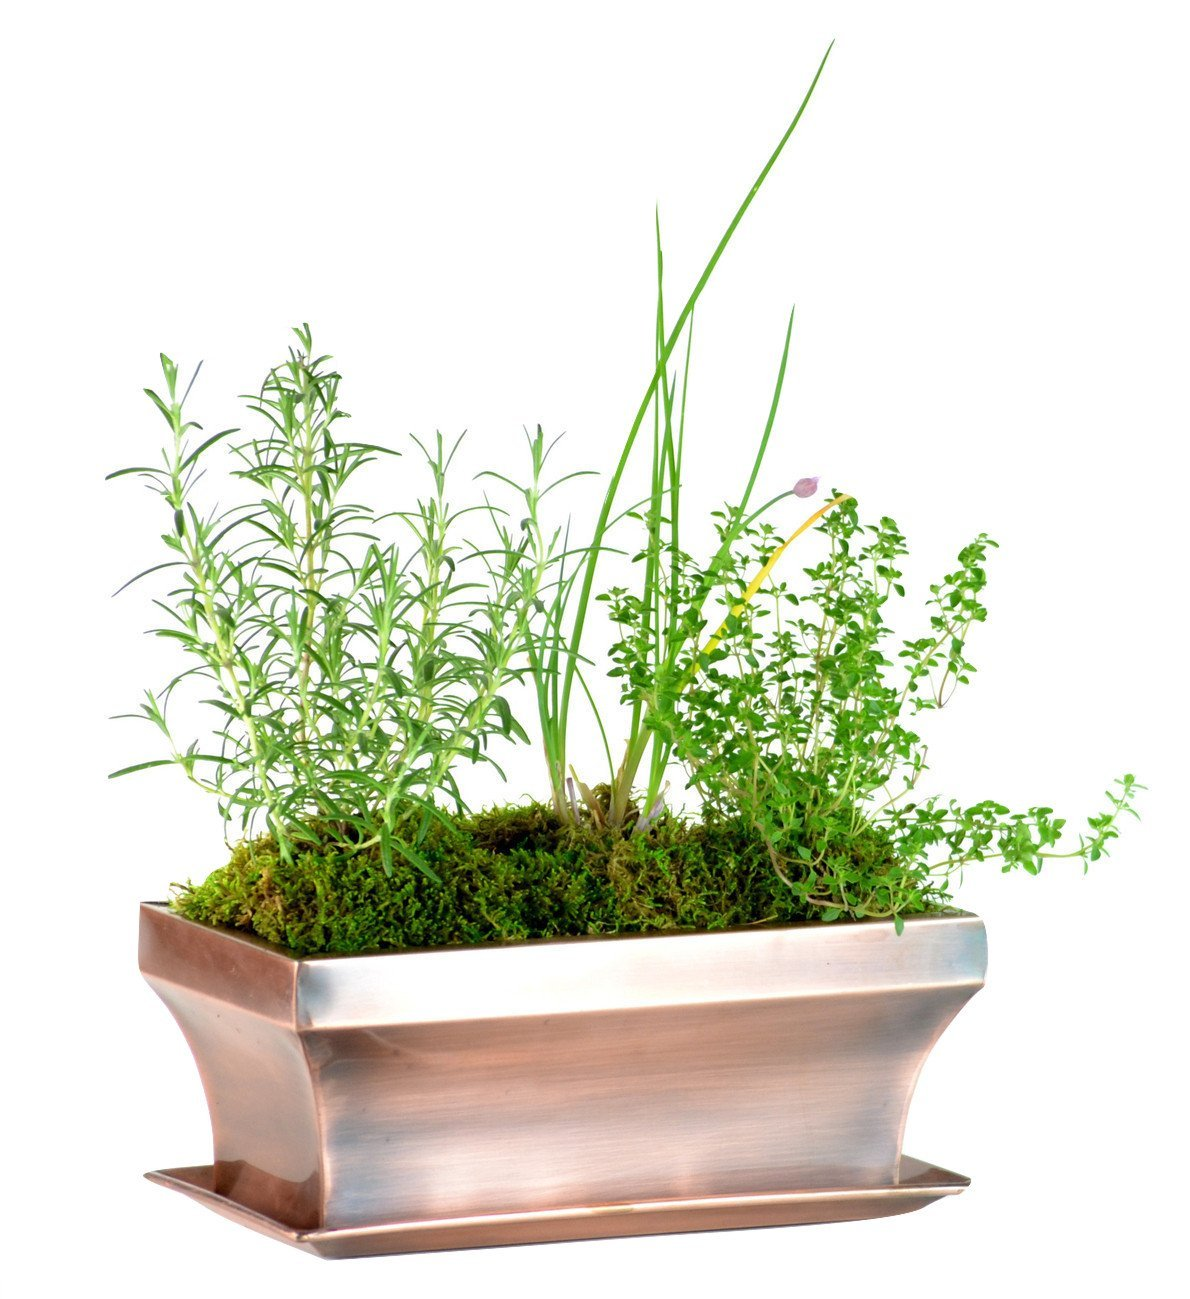 H Potter Rectangular Planter with Antique Copper Finish Indoor Outdoor Garden Pot and Plant Window Box for Succulent Flowers Dimensions 12 x 6 x 6 Inches Gar554 by H Potter